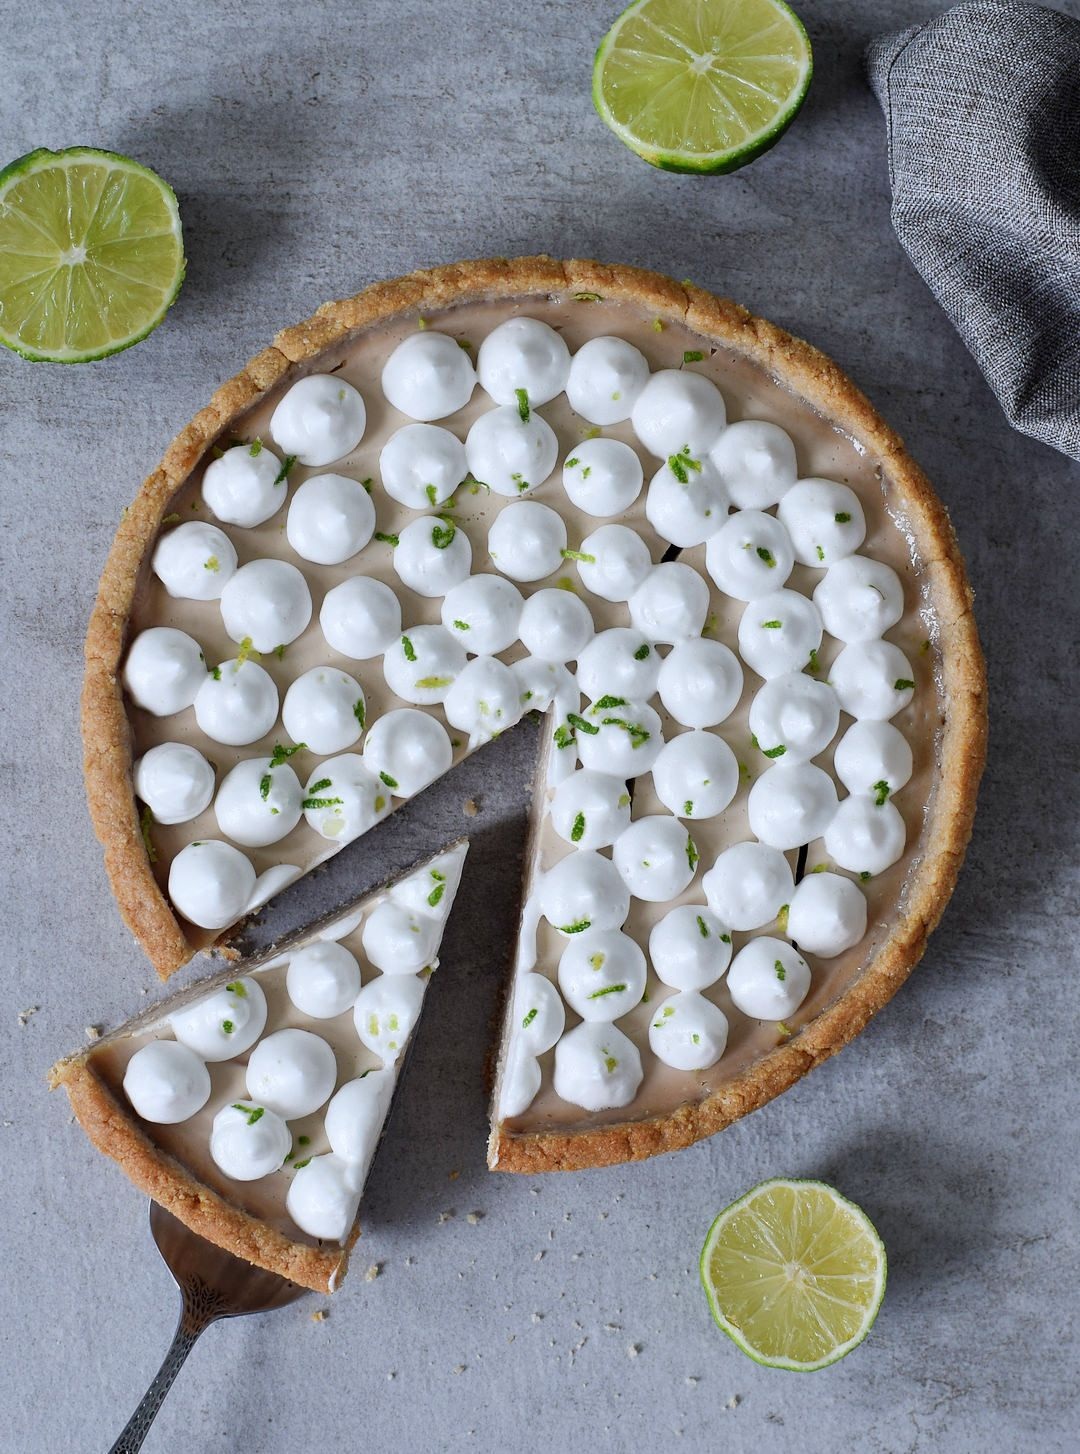 This Vegan Key Lime Pie Is A Delicious Light Tangy Dessert The Recipe Is Plant Based Gluten Free O Vegan Key Lime Vegan Key Lime Pie Plant Based Desserts